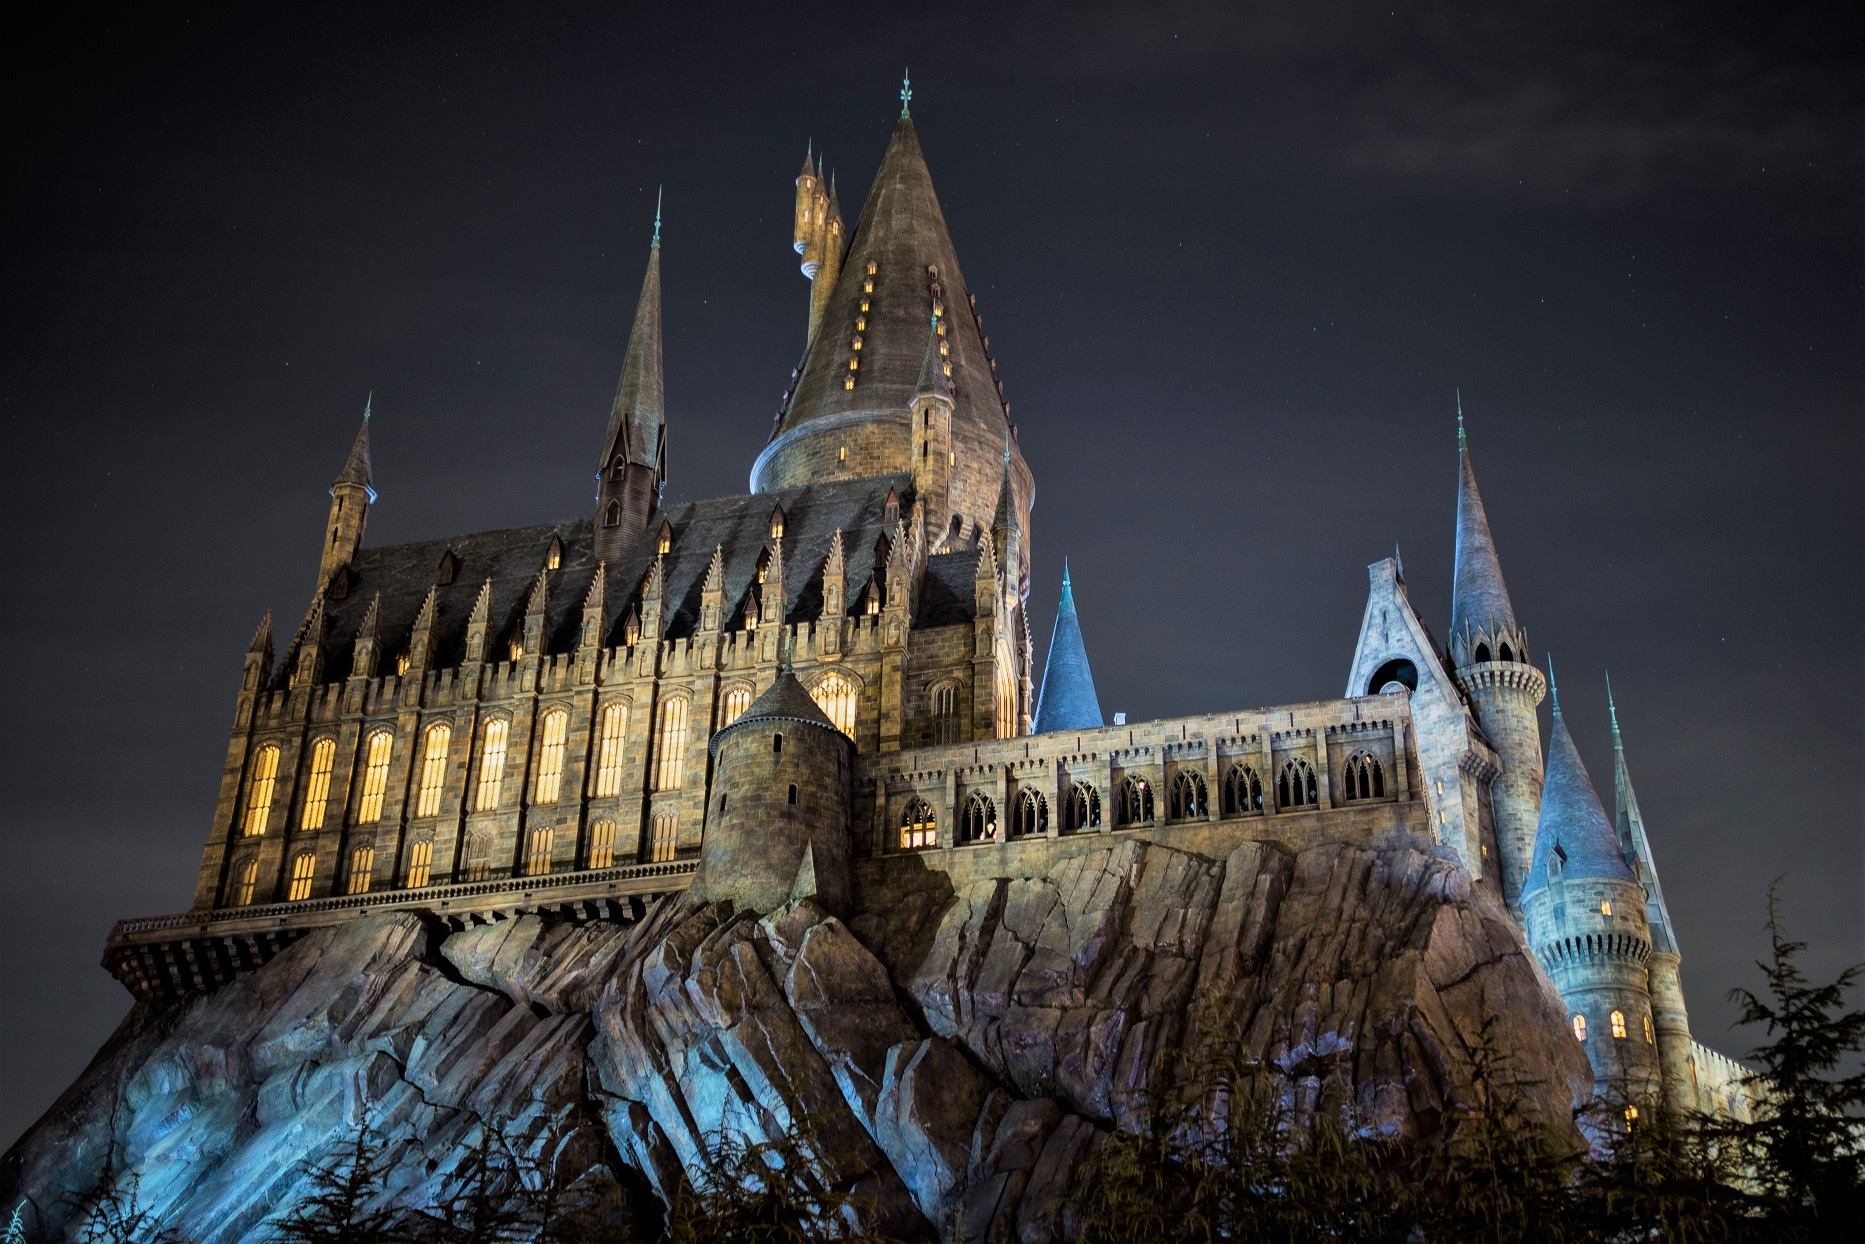 Harry Potter The Hogwarts School of Witchcraft and Wizardry at Night